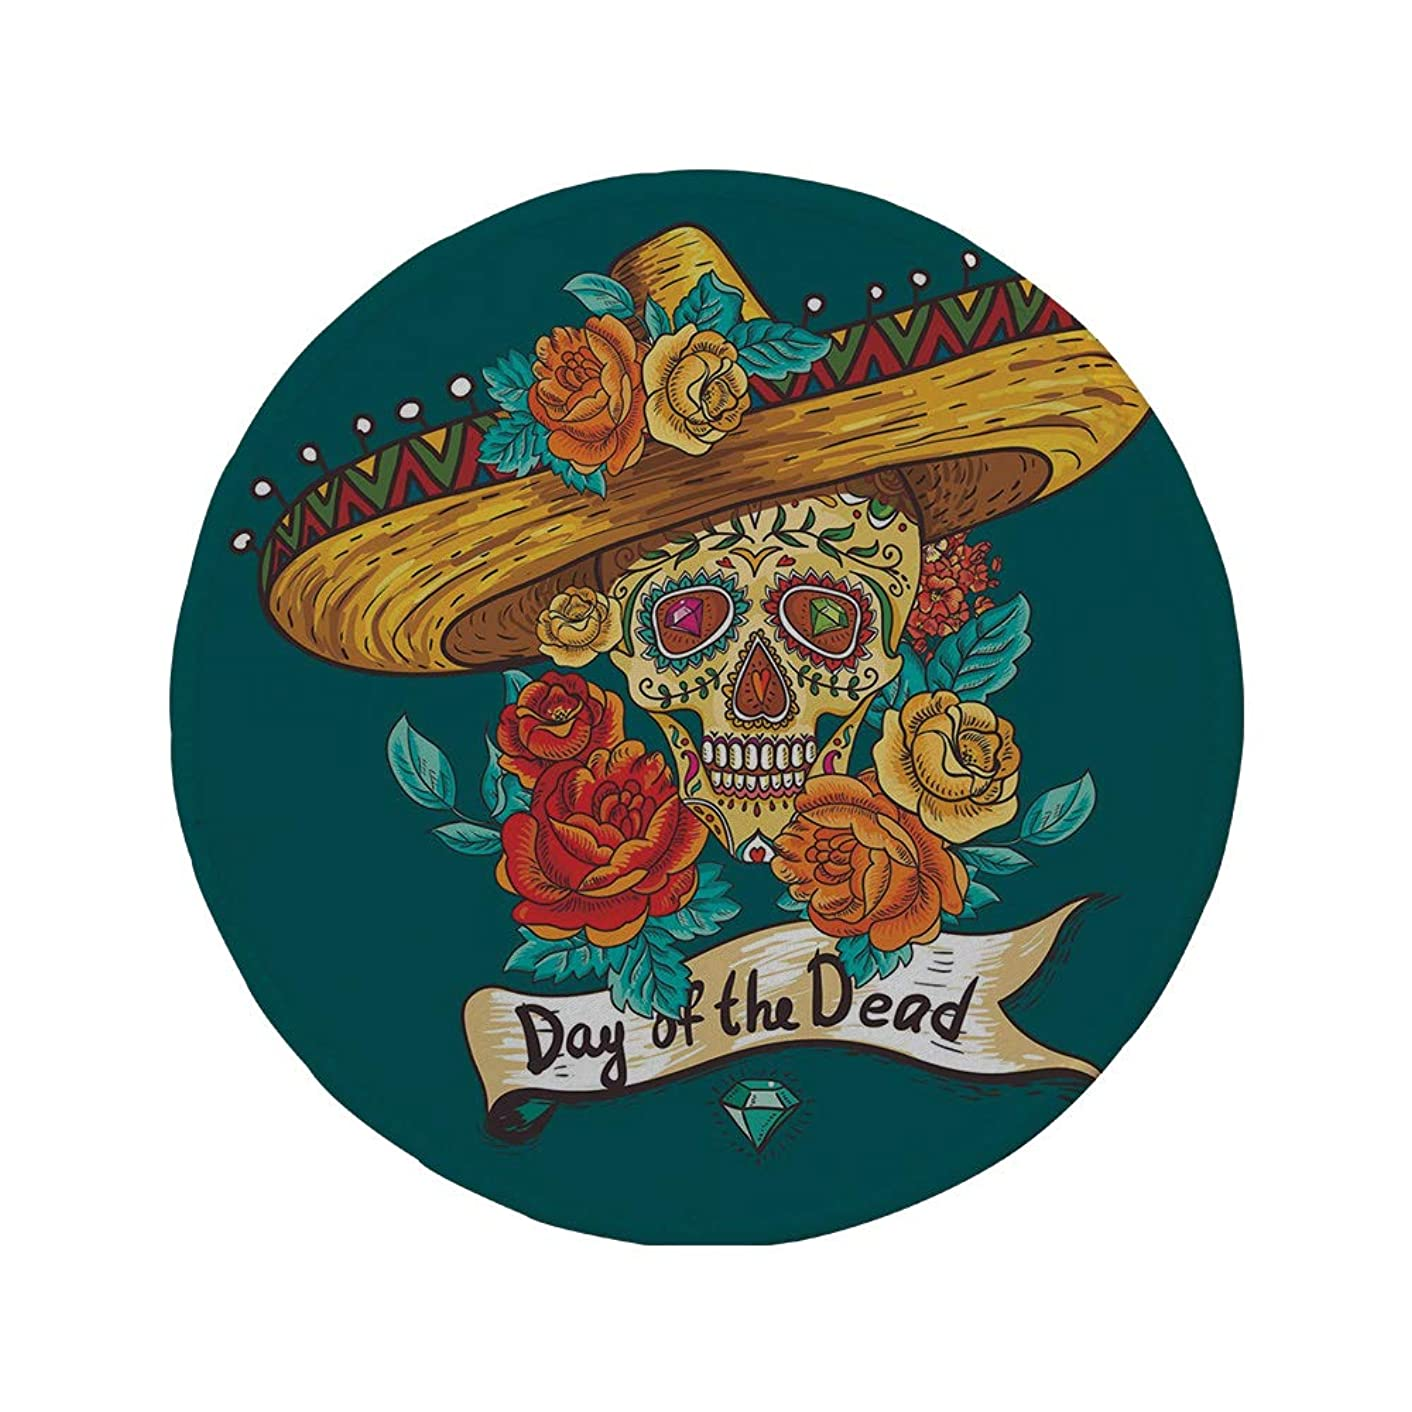 Non-Slip Rubber Round Mouse Pad,Day of The Dead Decor,Mexican Festive Hat Skull with Roses Print,Petrol Blue Turquoise Orange Marigold,7.87